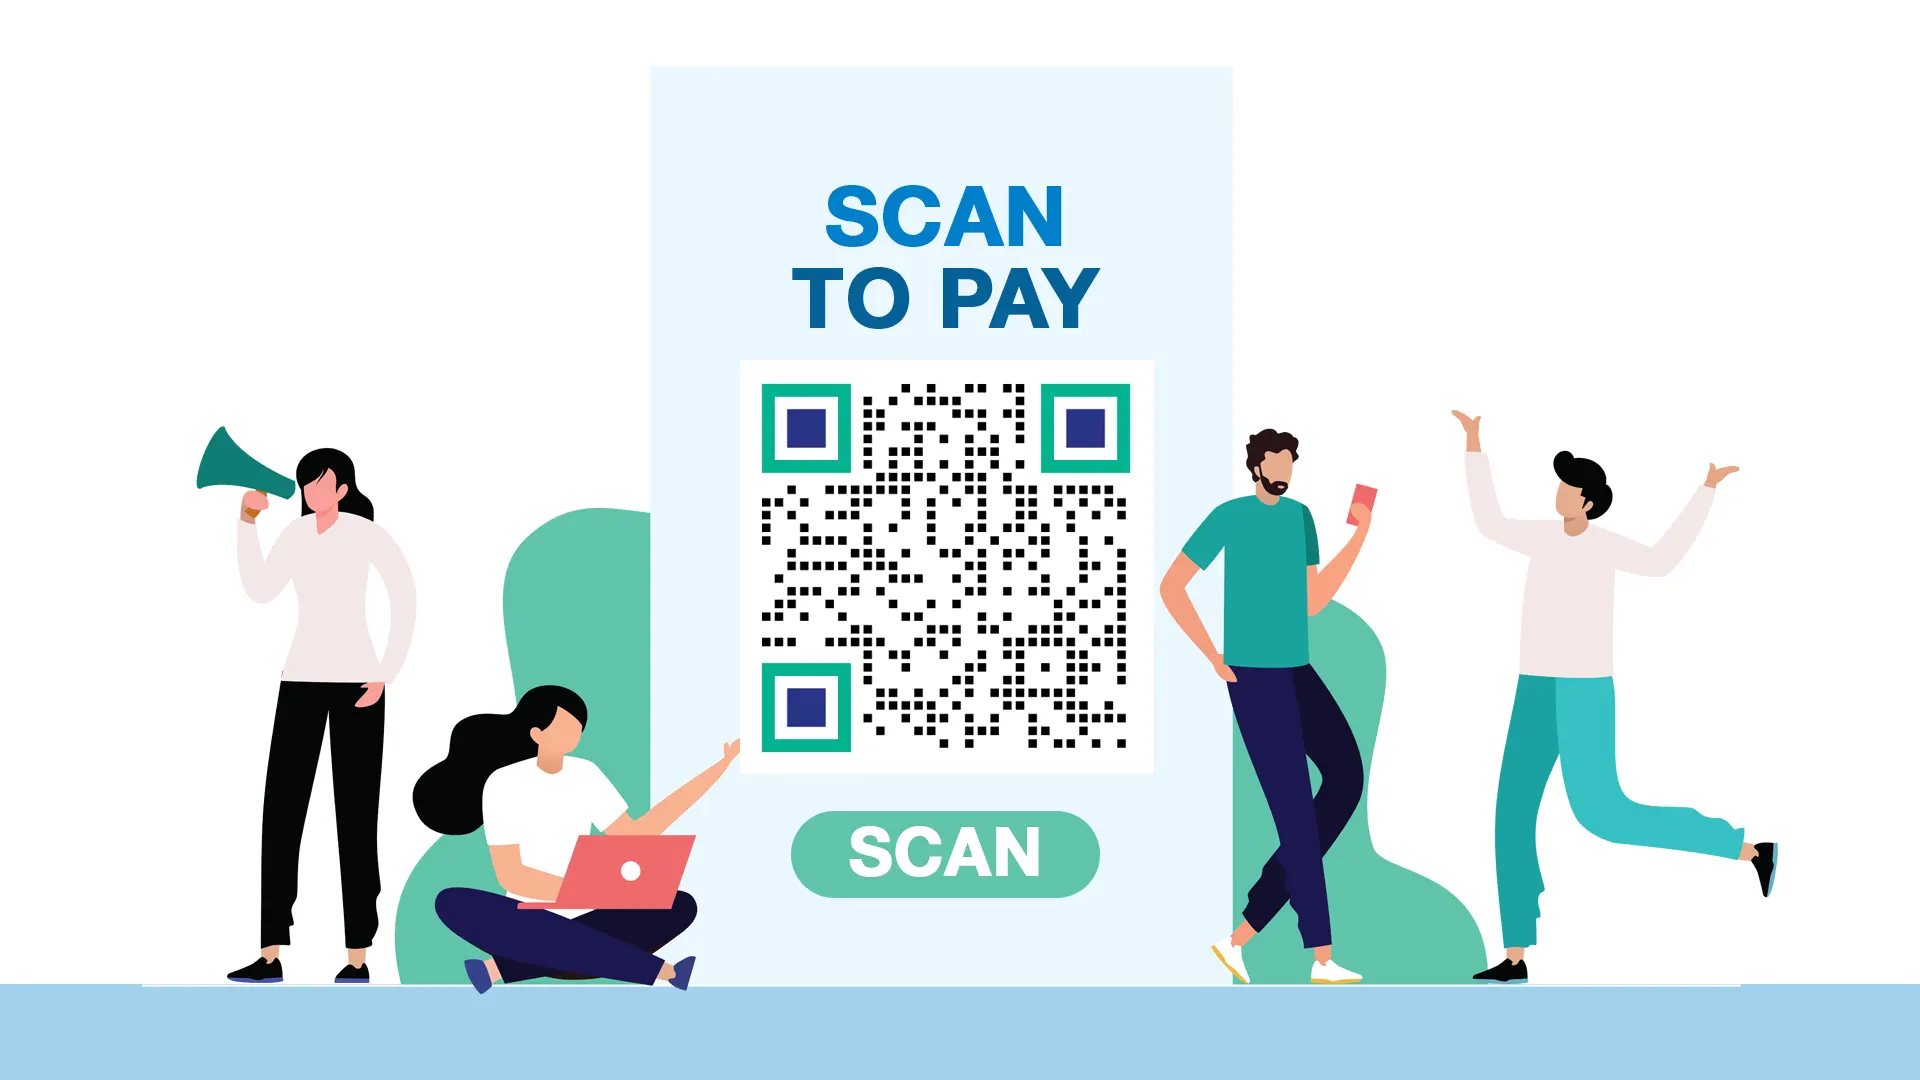 qr codes for your event payment